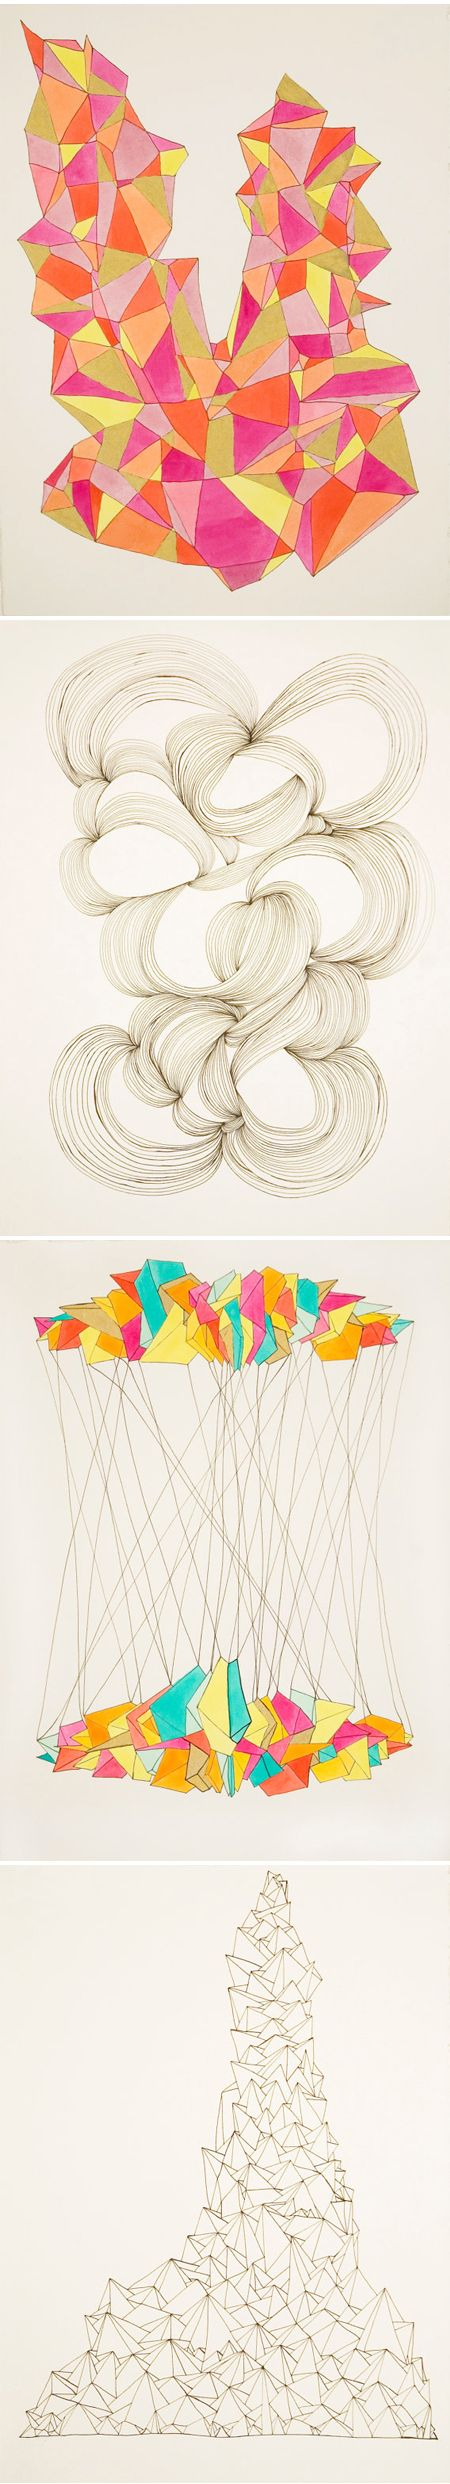 Gorgeous geometric drawings by Kristy Modarelli selling for 100 bucks each and 25% going to charity.